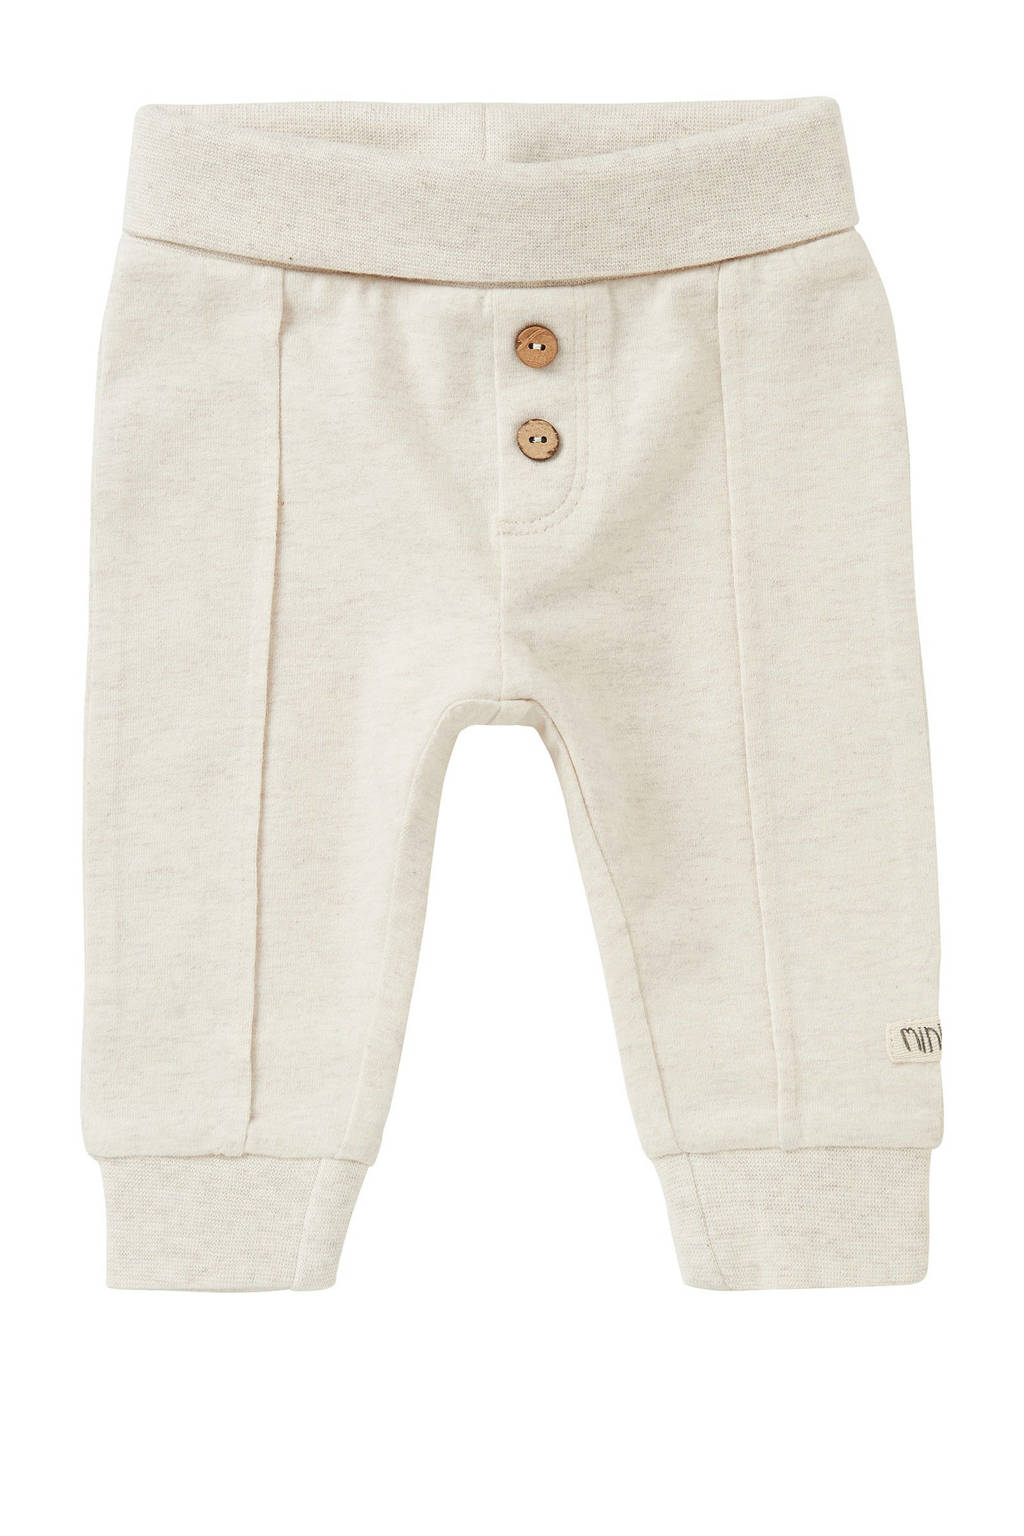 Noppies baby slim fit broek Botleng wit, Wit